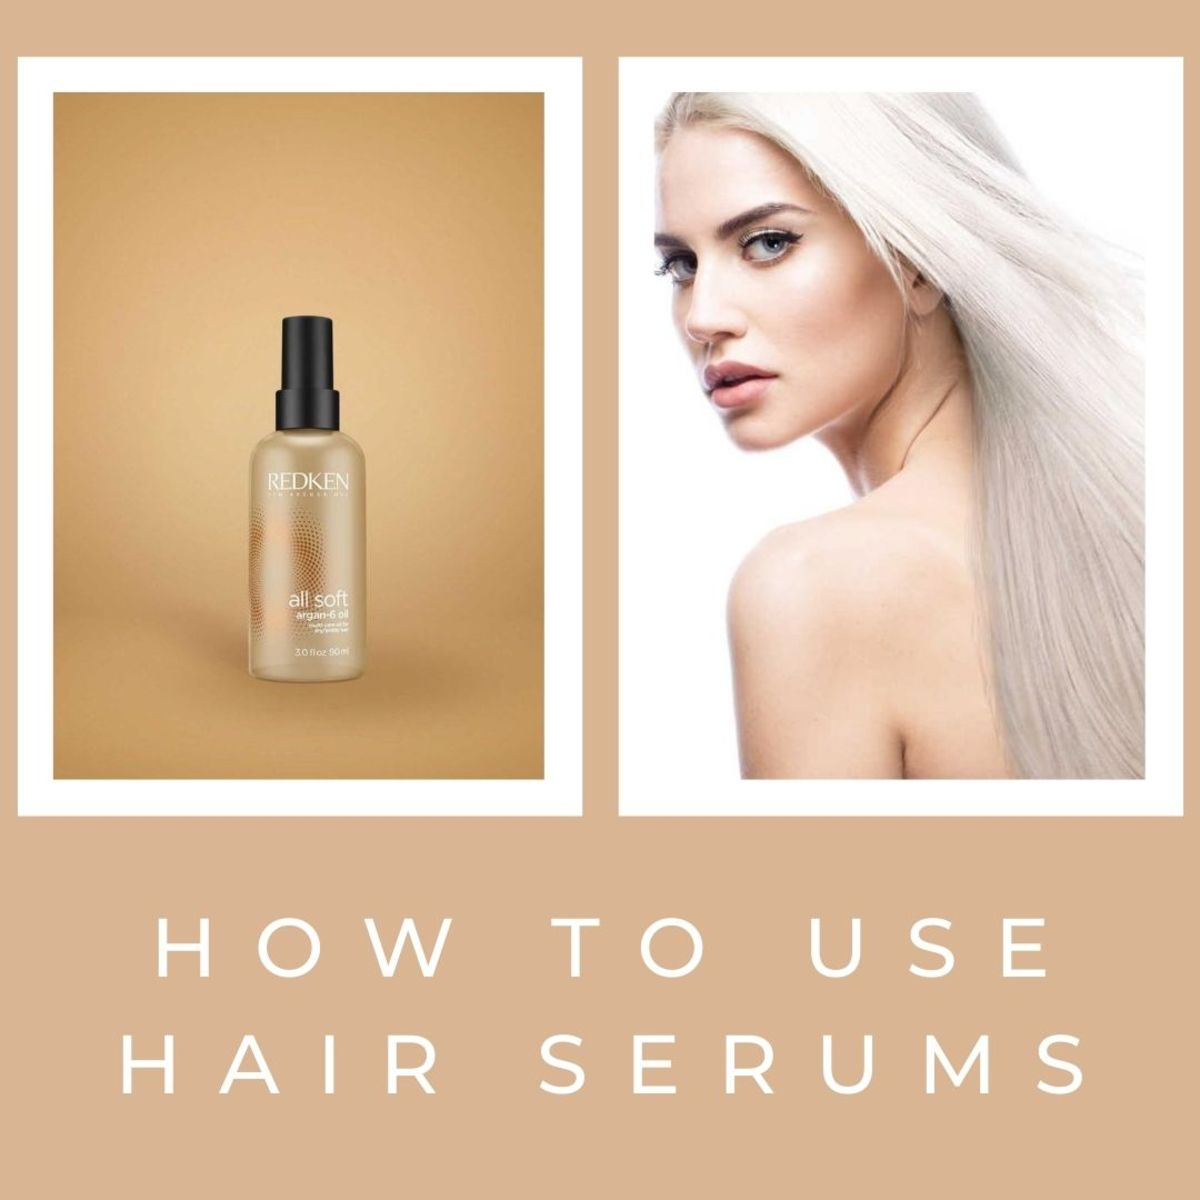 hair-smoothing-serums